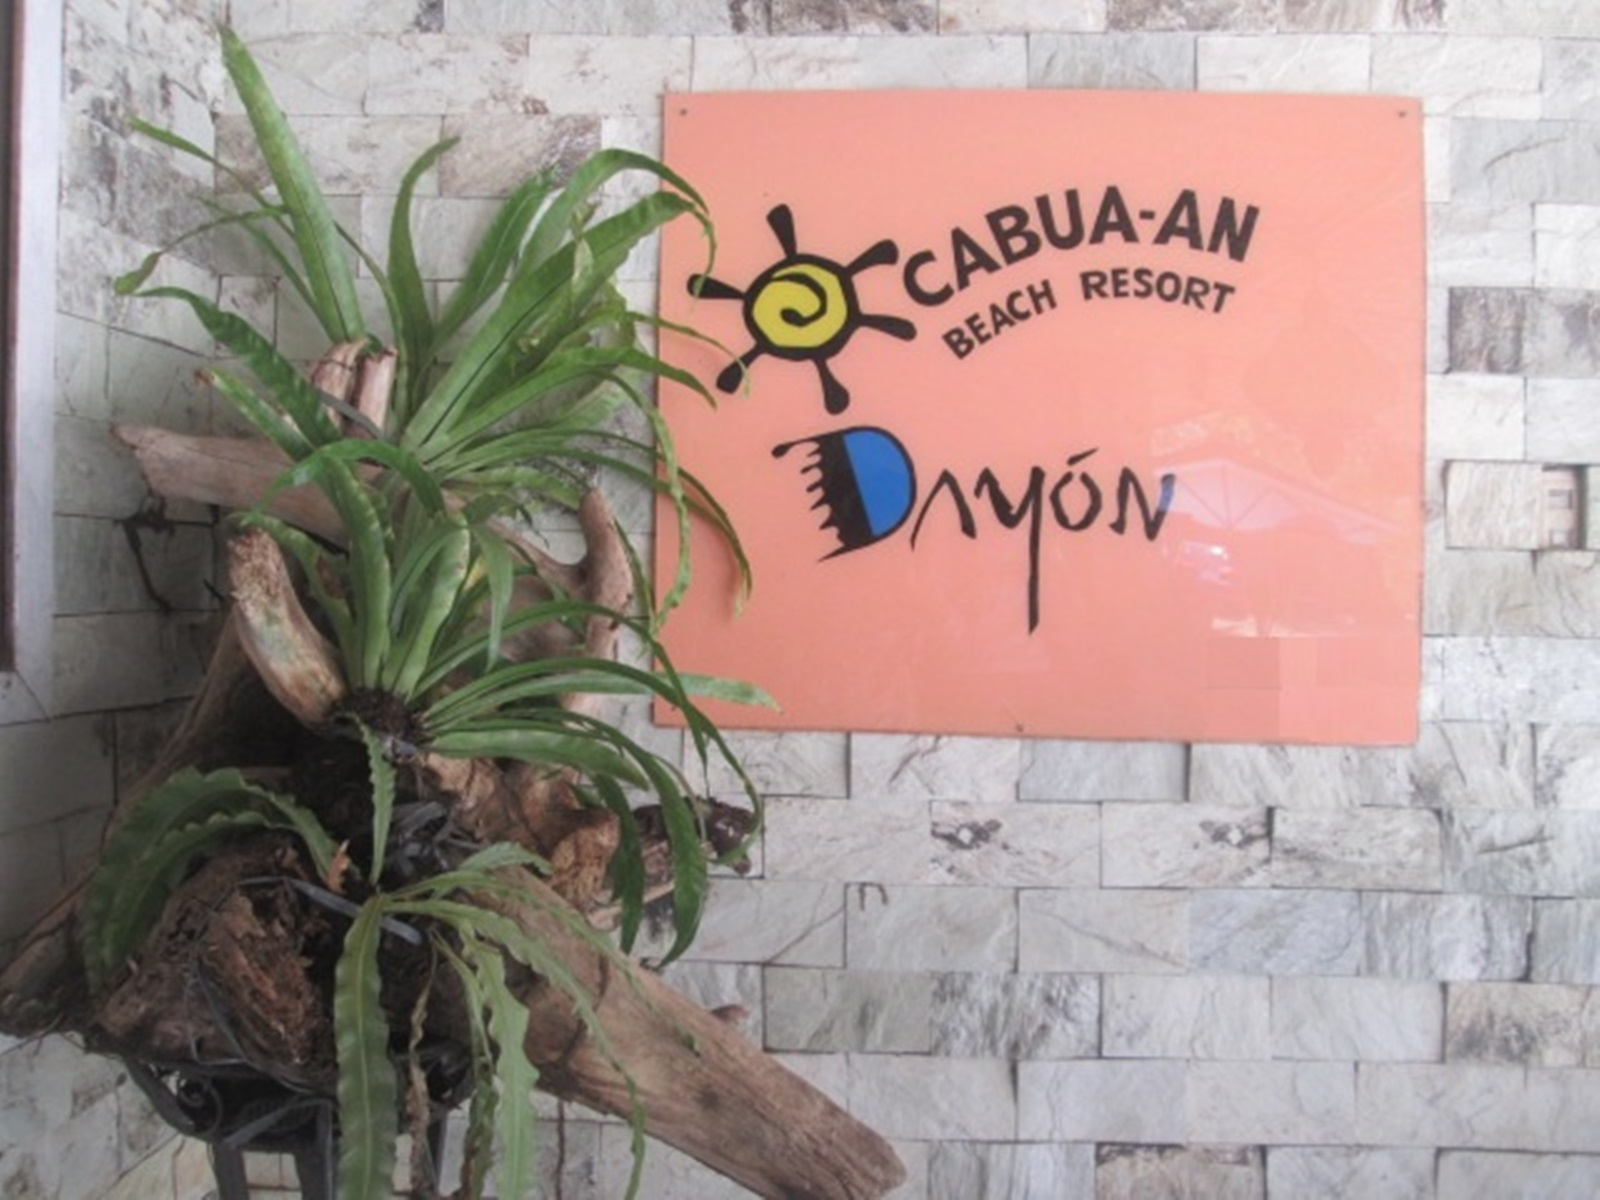 Cabua-an Beach Resort Camiguin